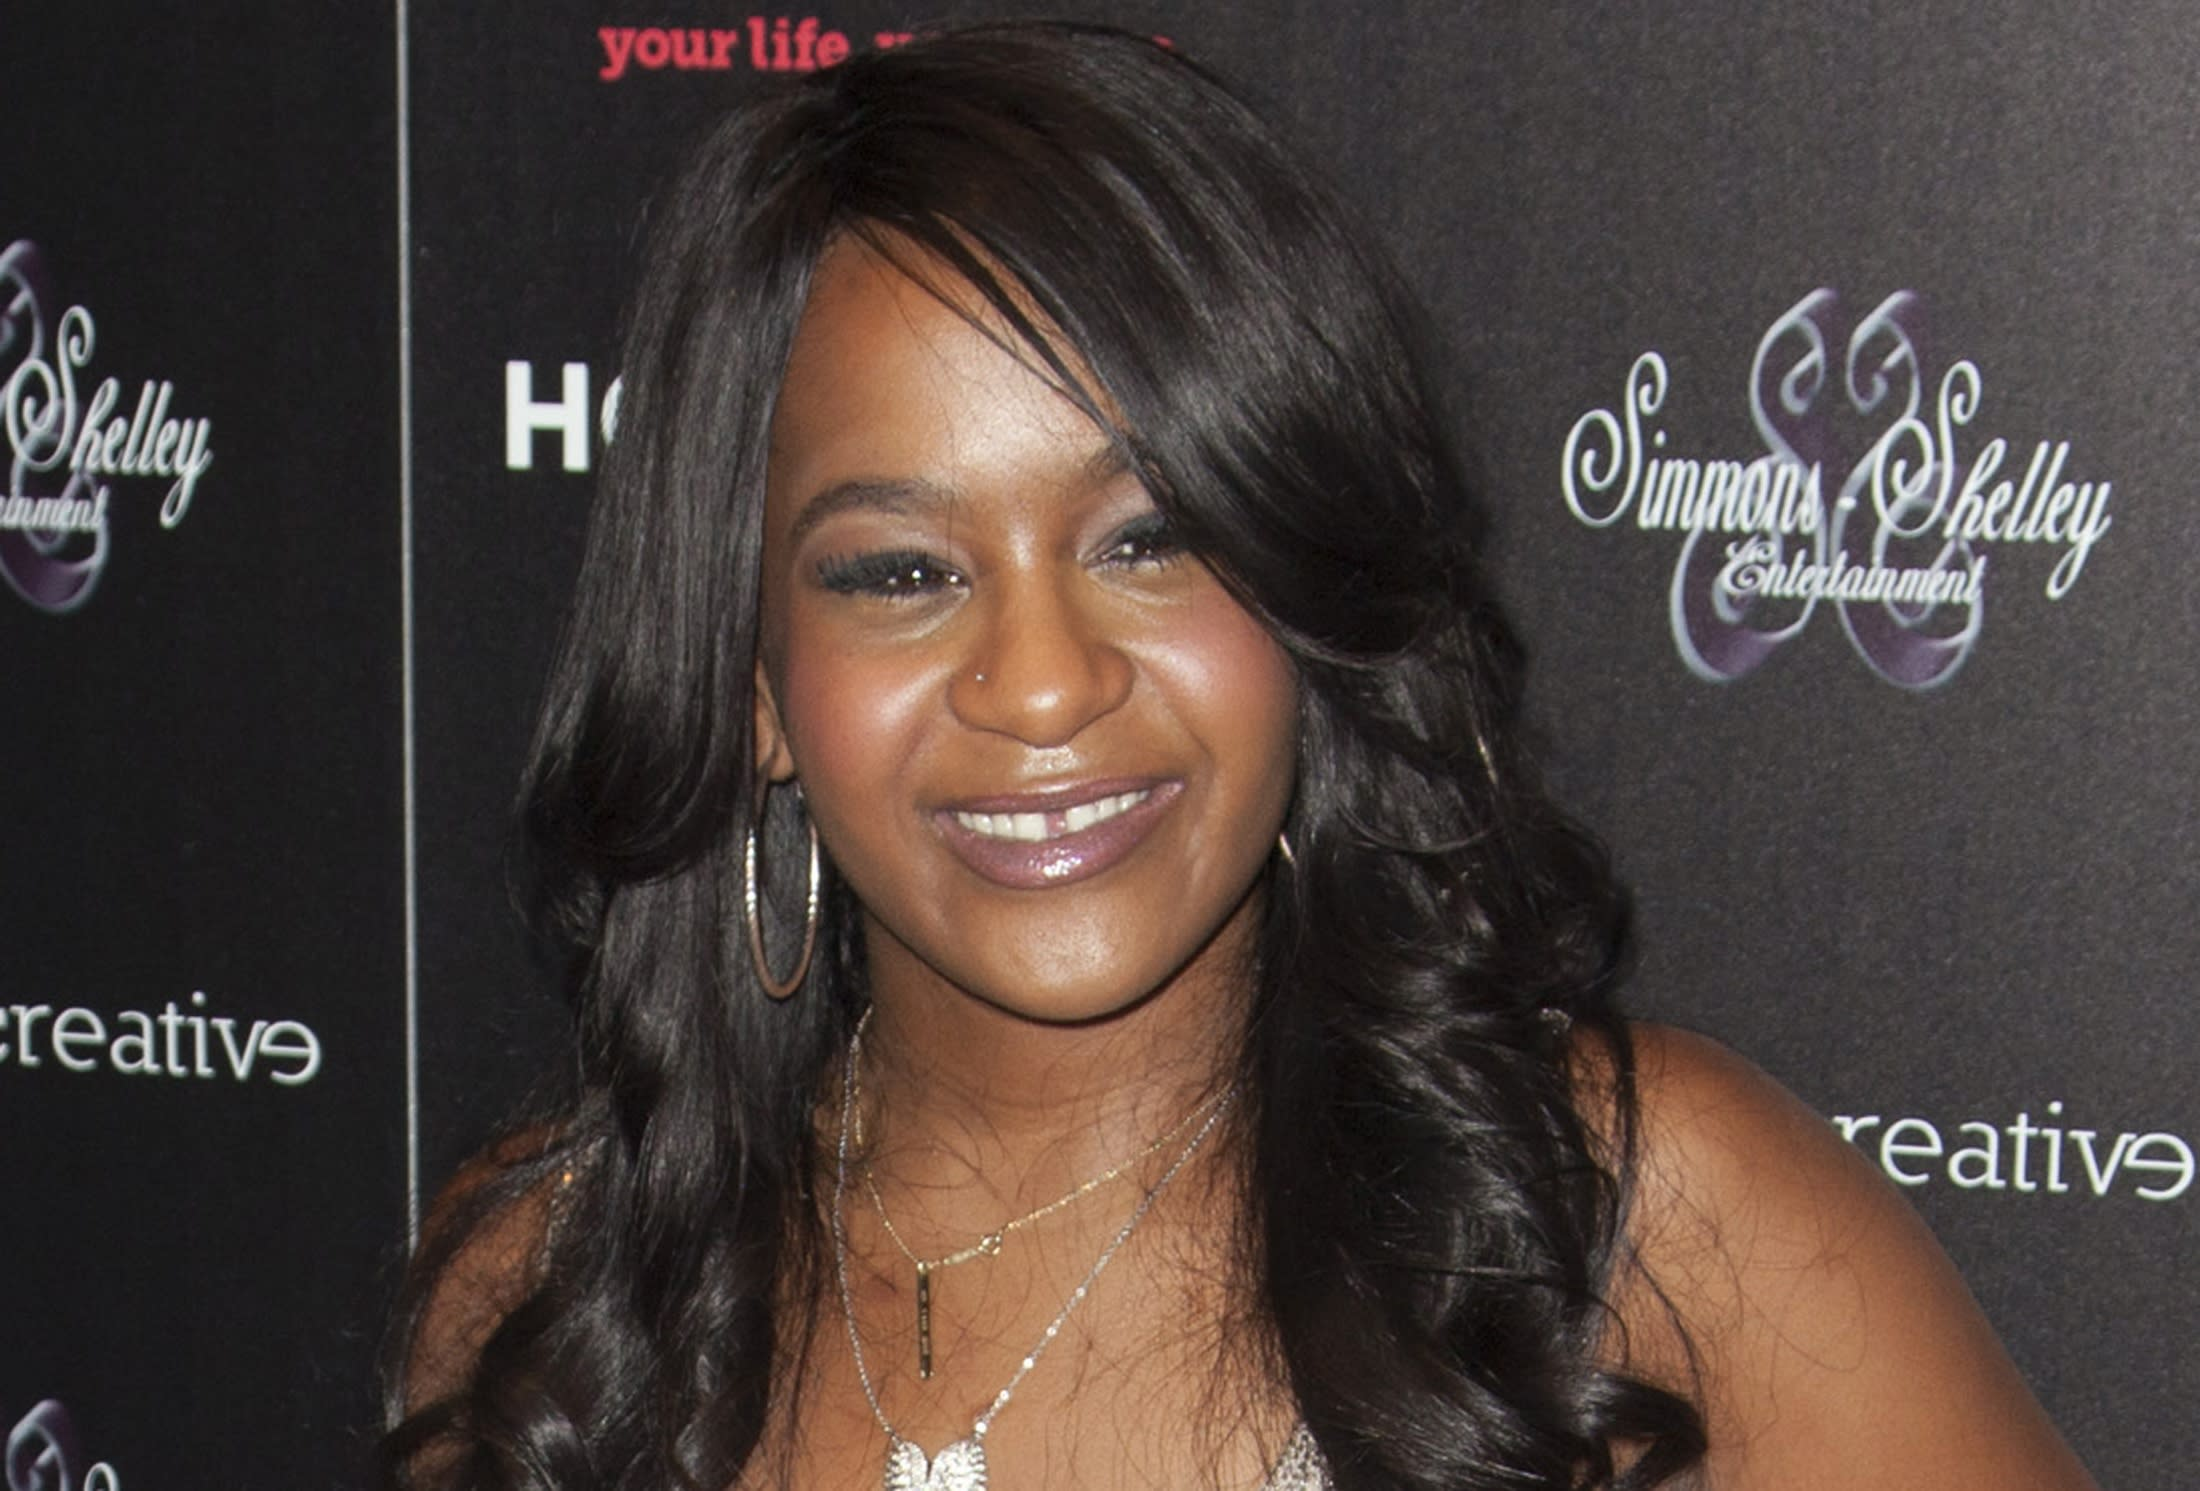 Houston family gives Bobbi Kristina update